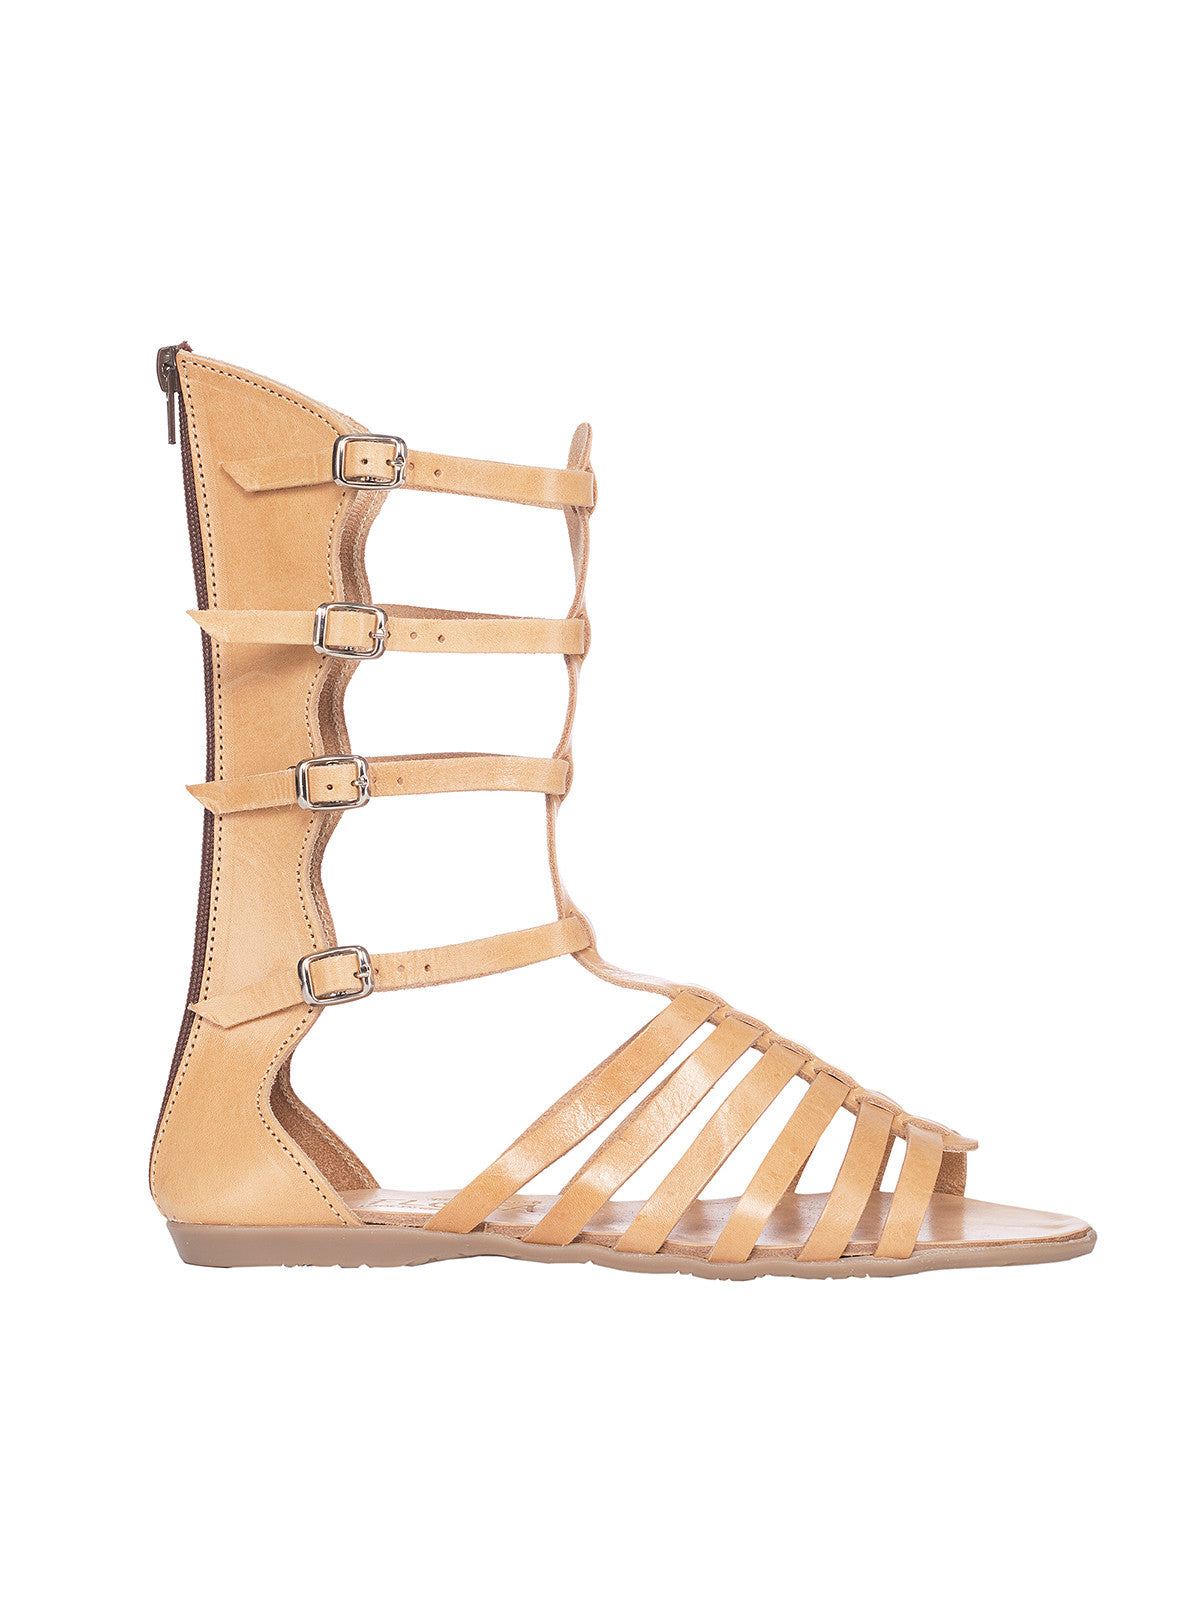 Kalliope Greek Sandals